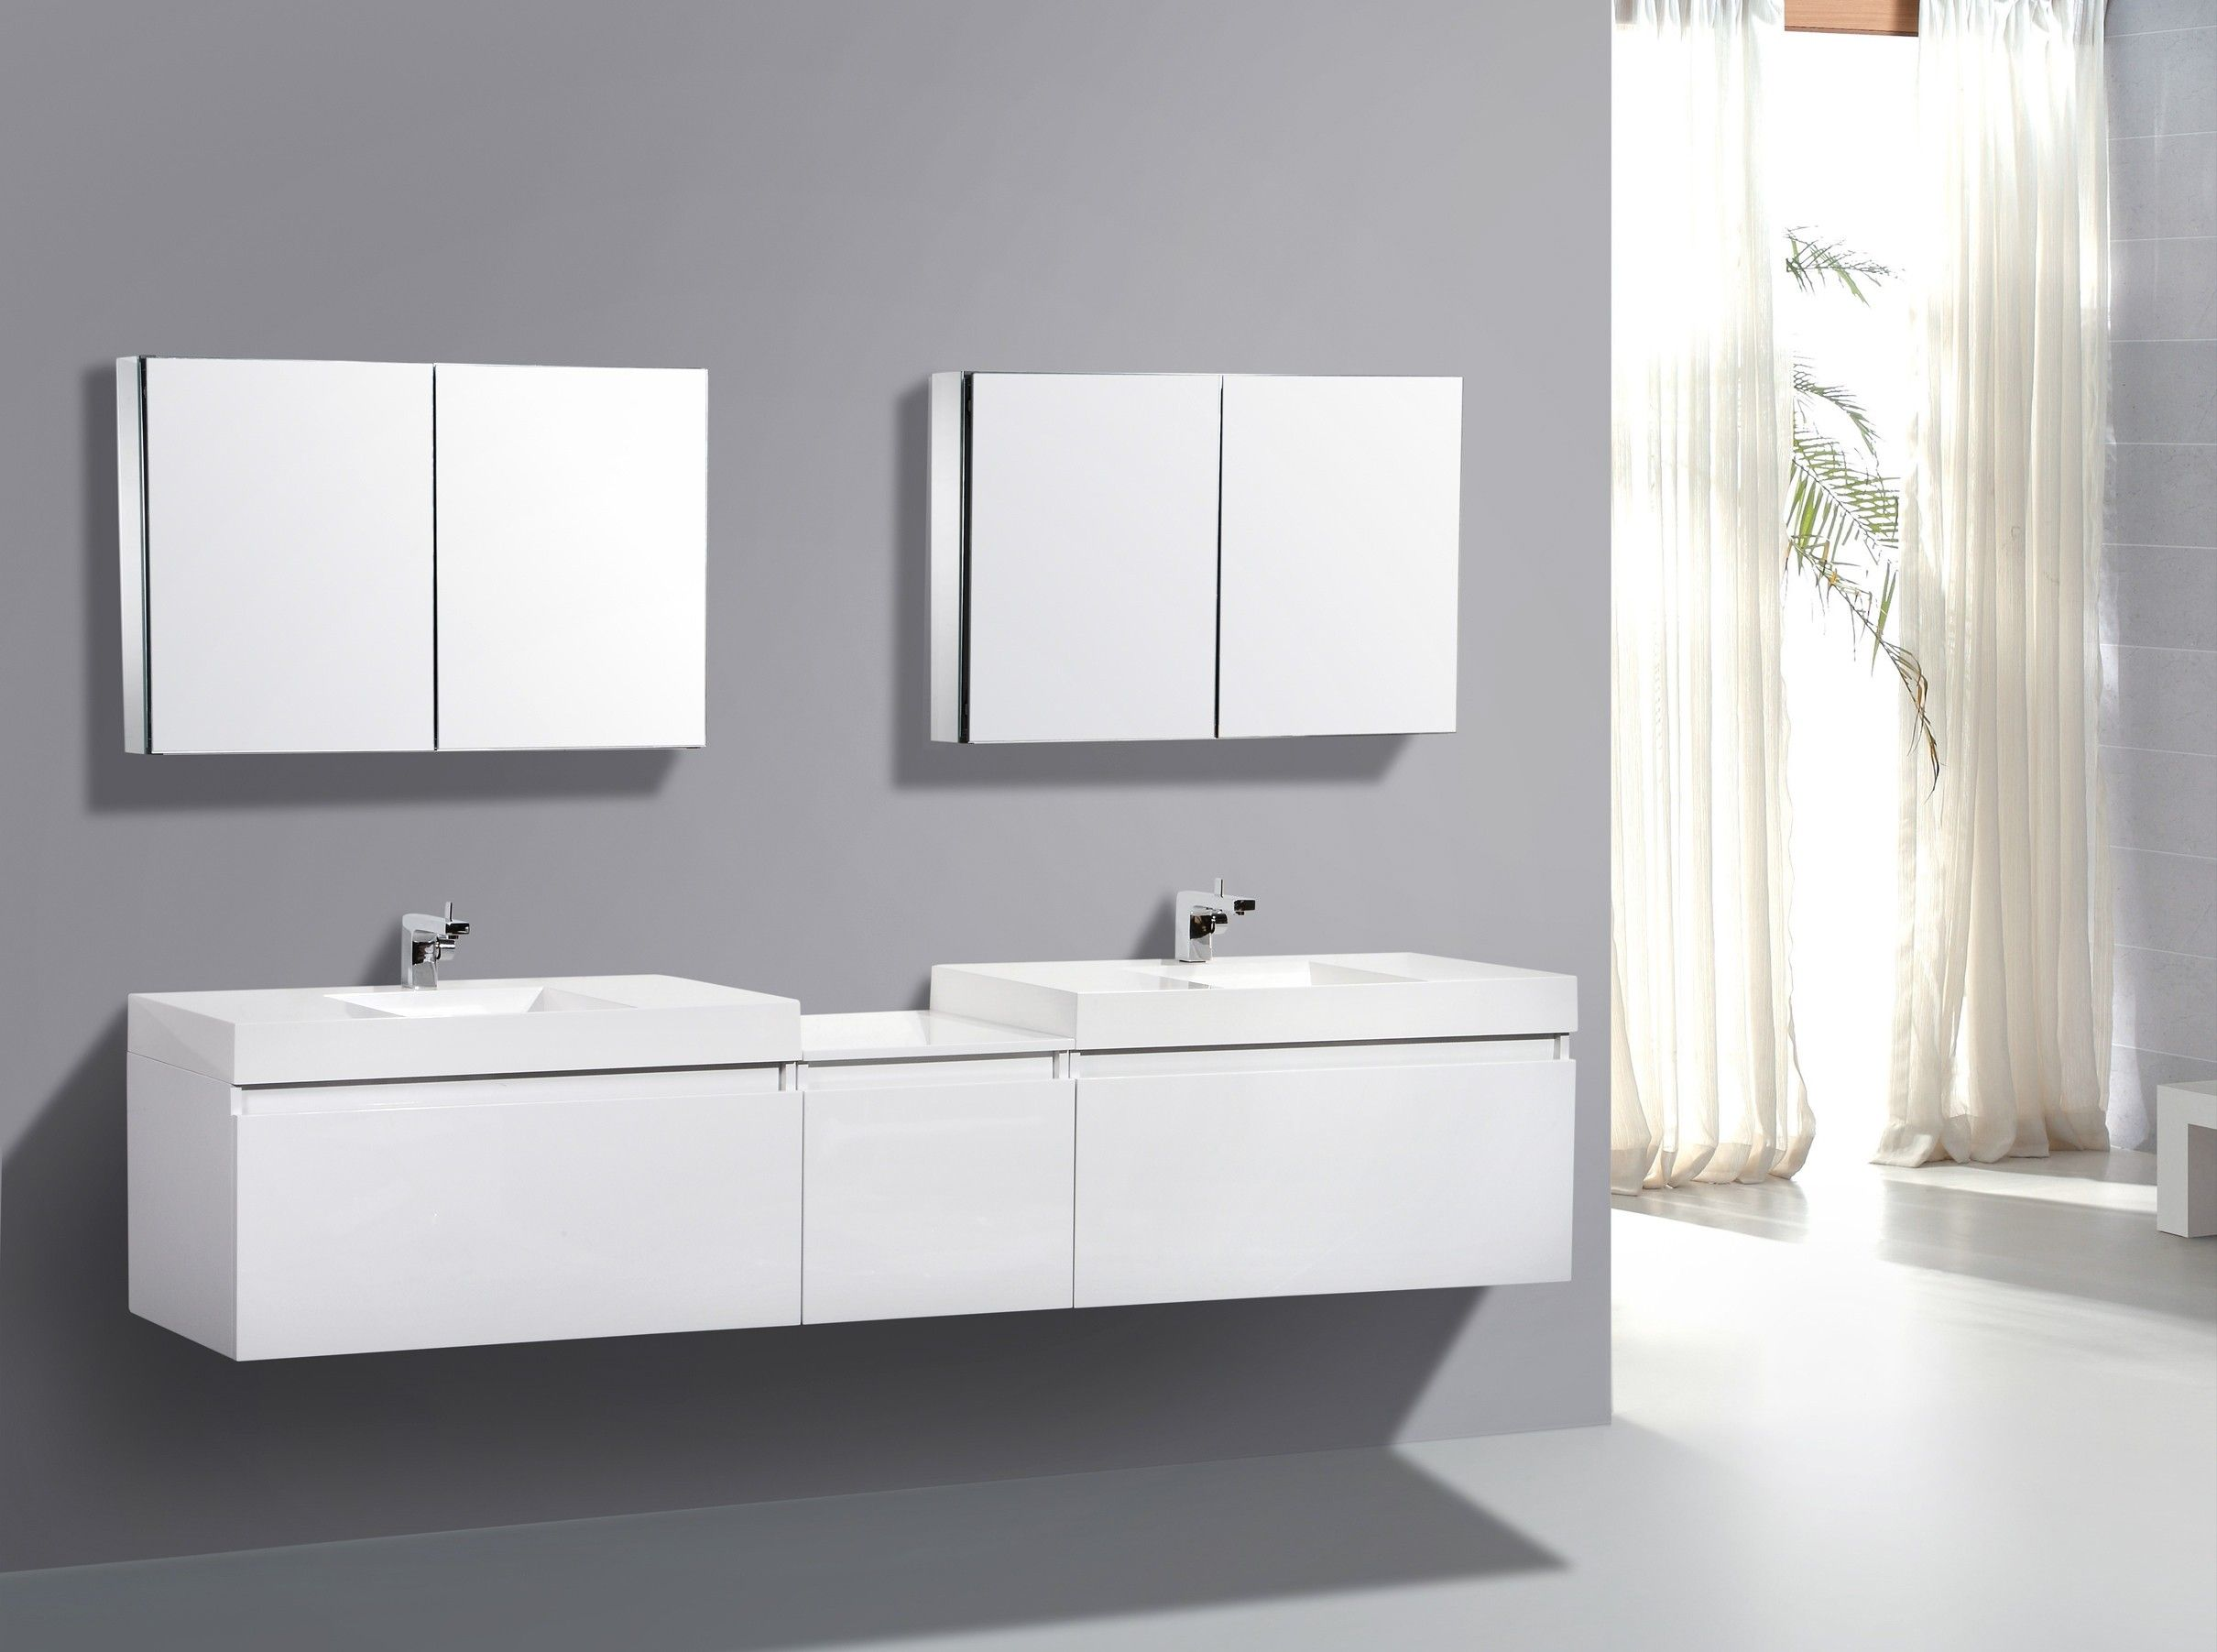 vanity sink white flare set traditional single bathroom radius double modero avanity